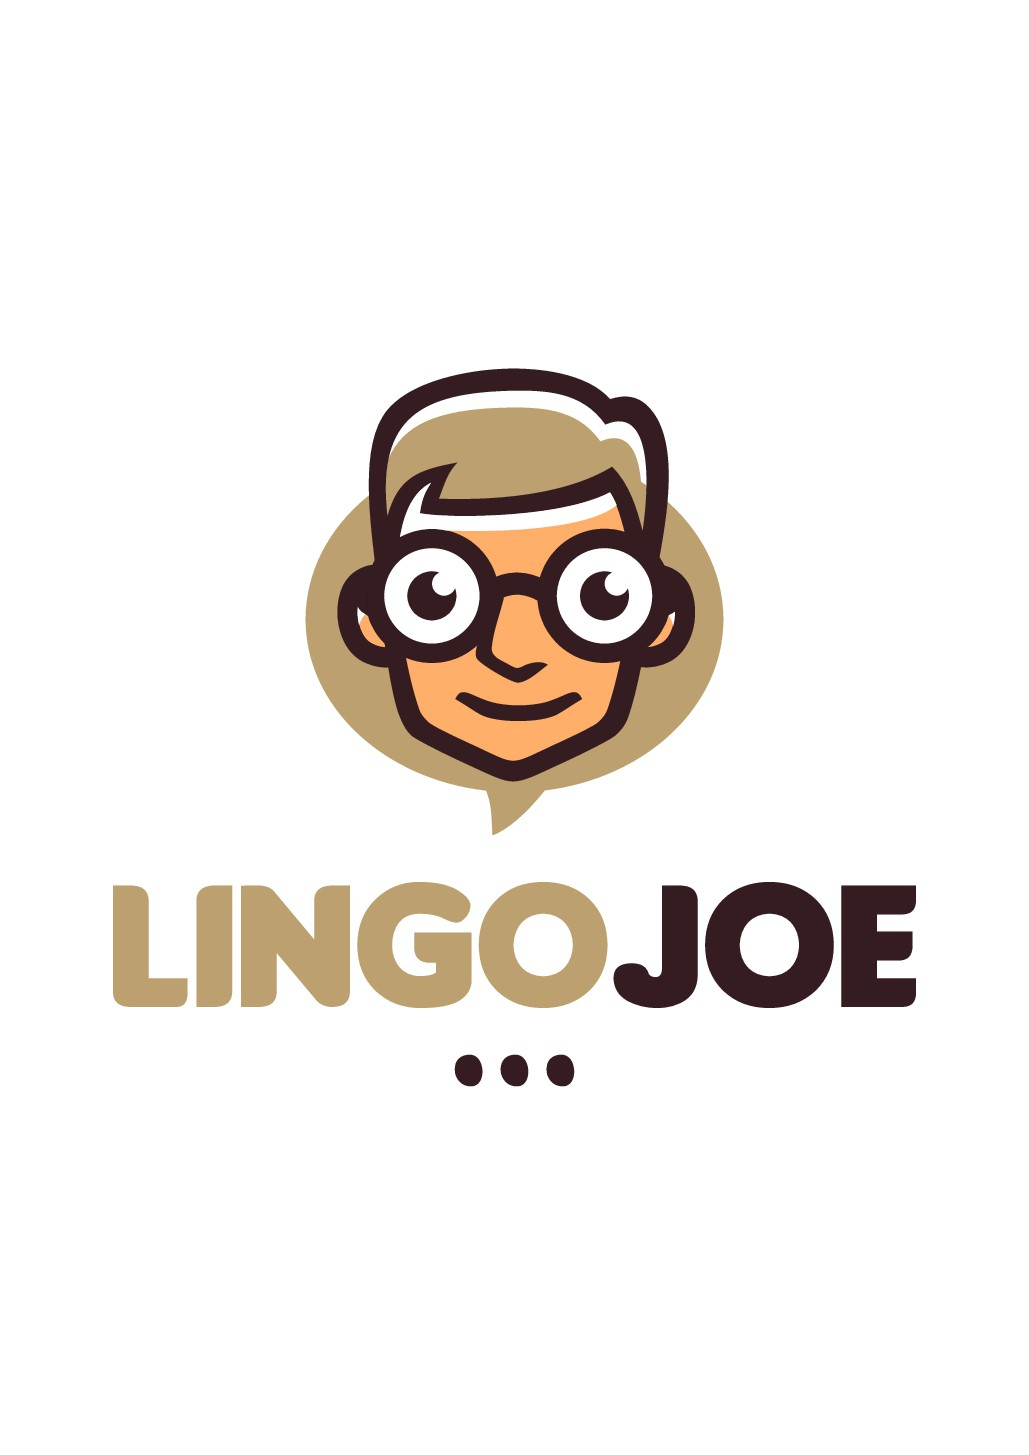 Logo design for a language learning web site